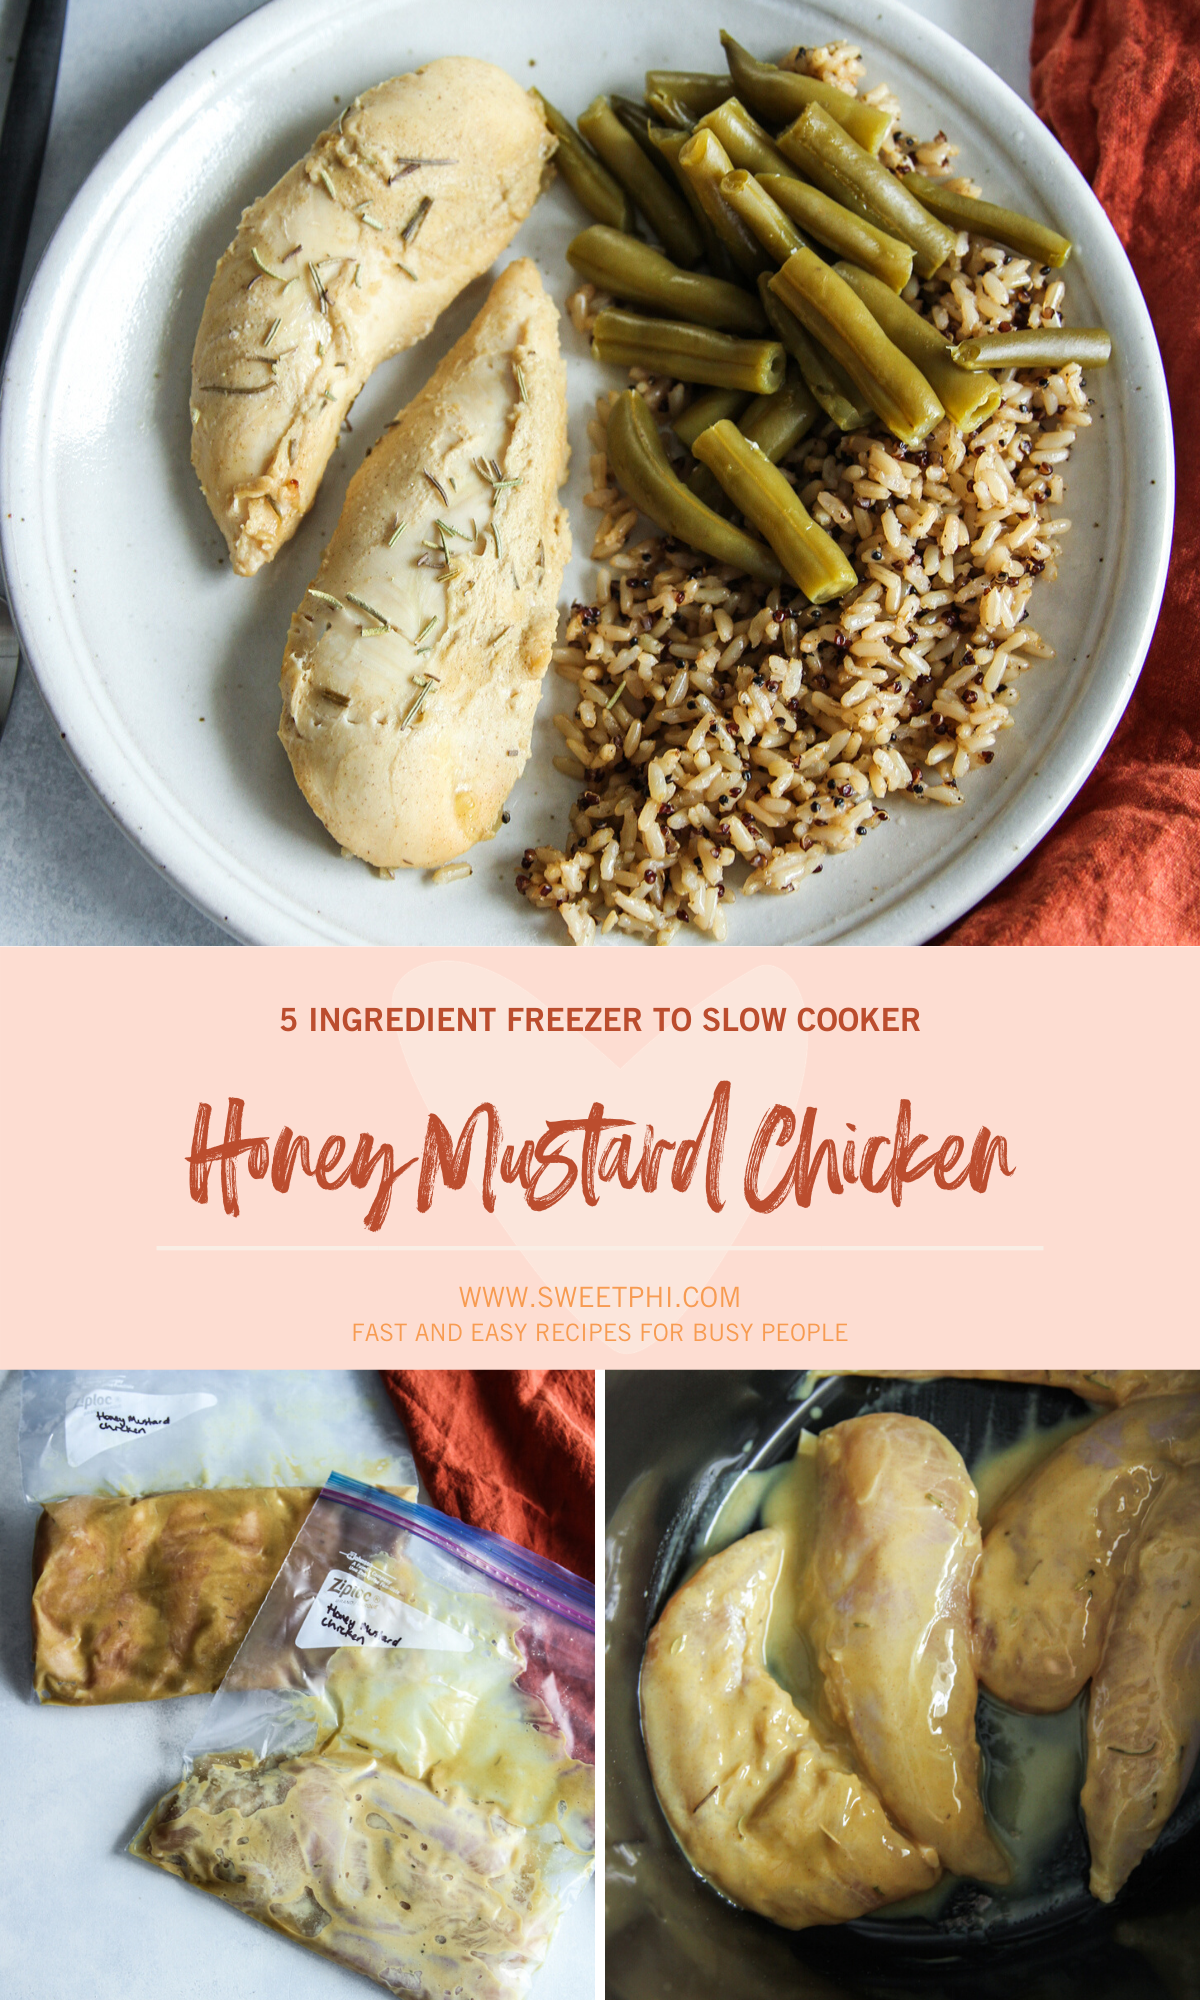 5 Ingredient Freezer to Slow Cooker Honey Mustard Chicken